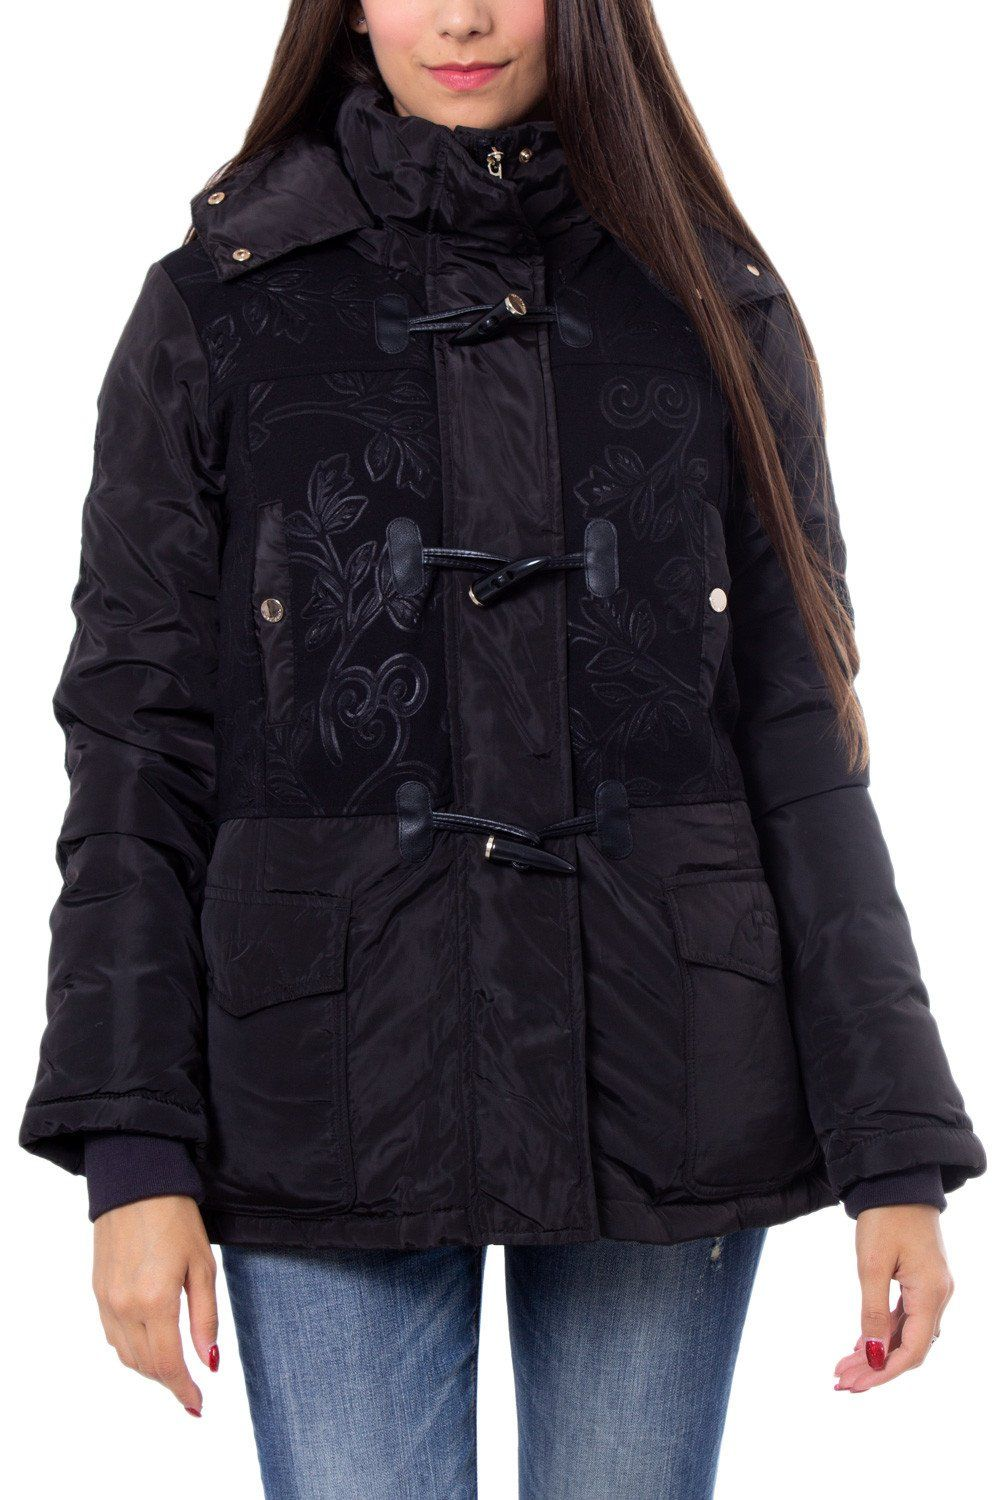 Desigual Women's Jacket In Black